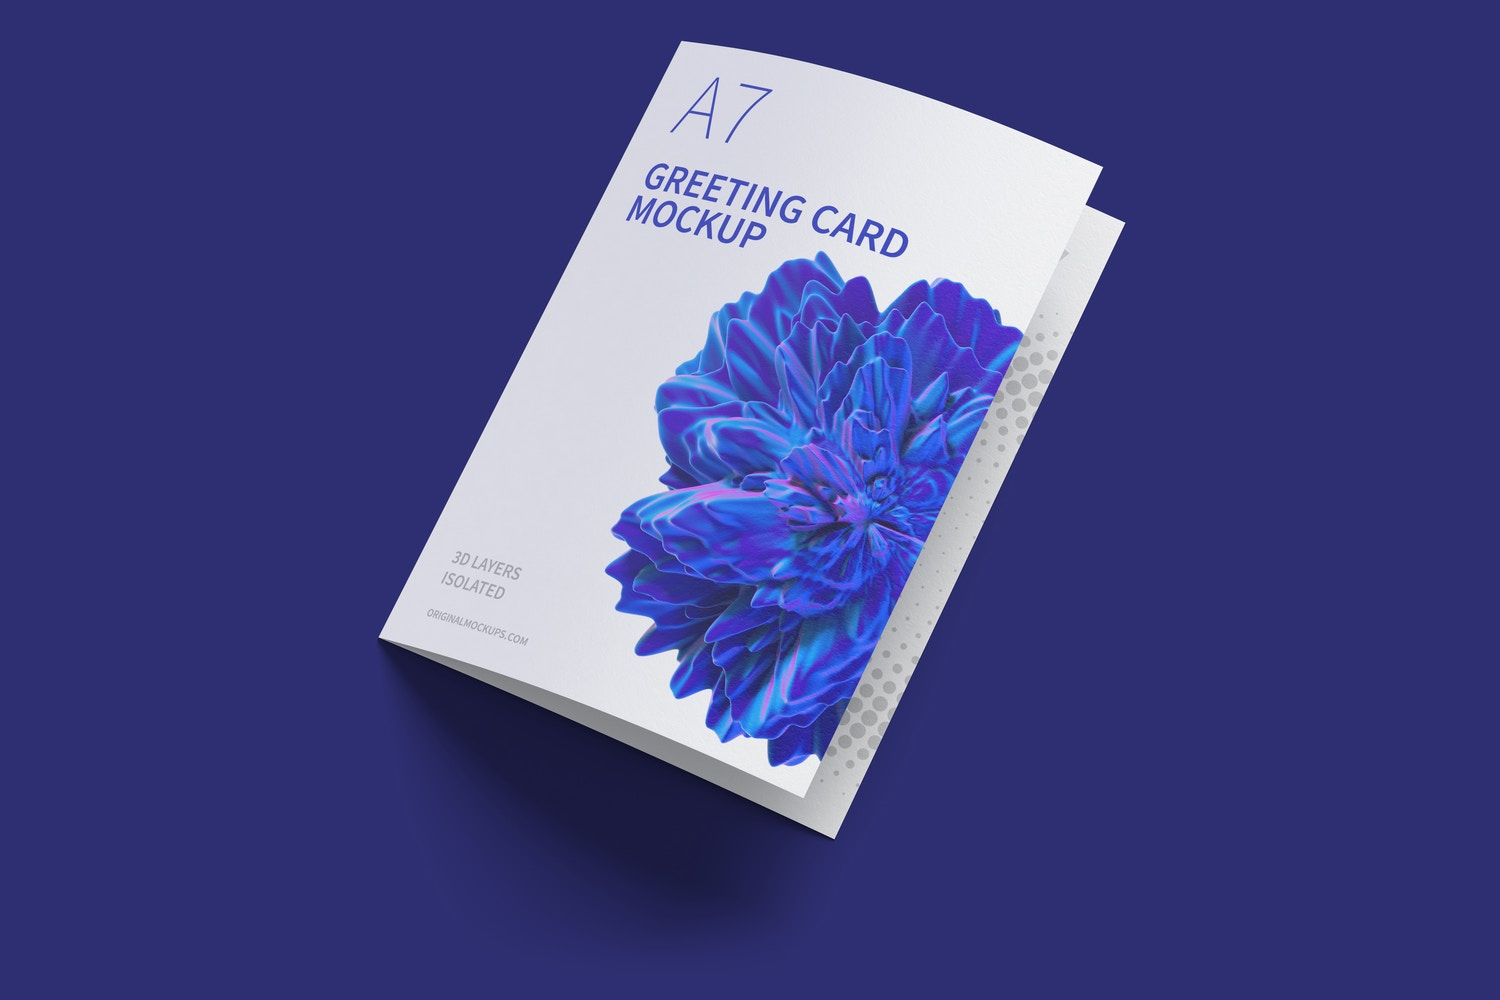 A7 Greeting Card Mockup, Closed, Left View